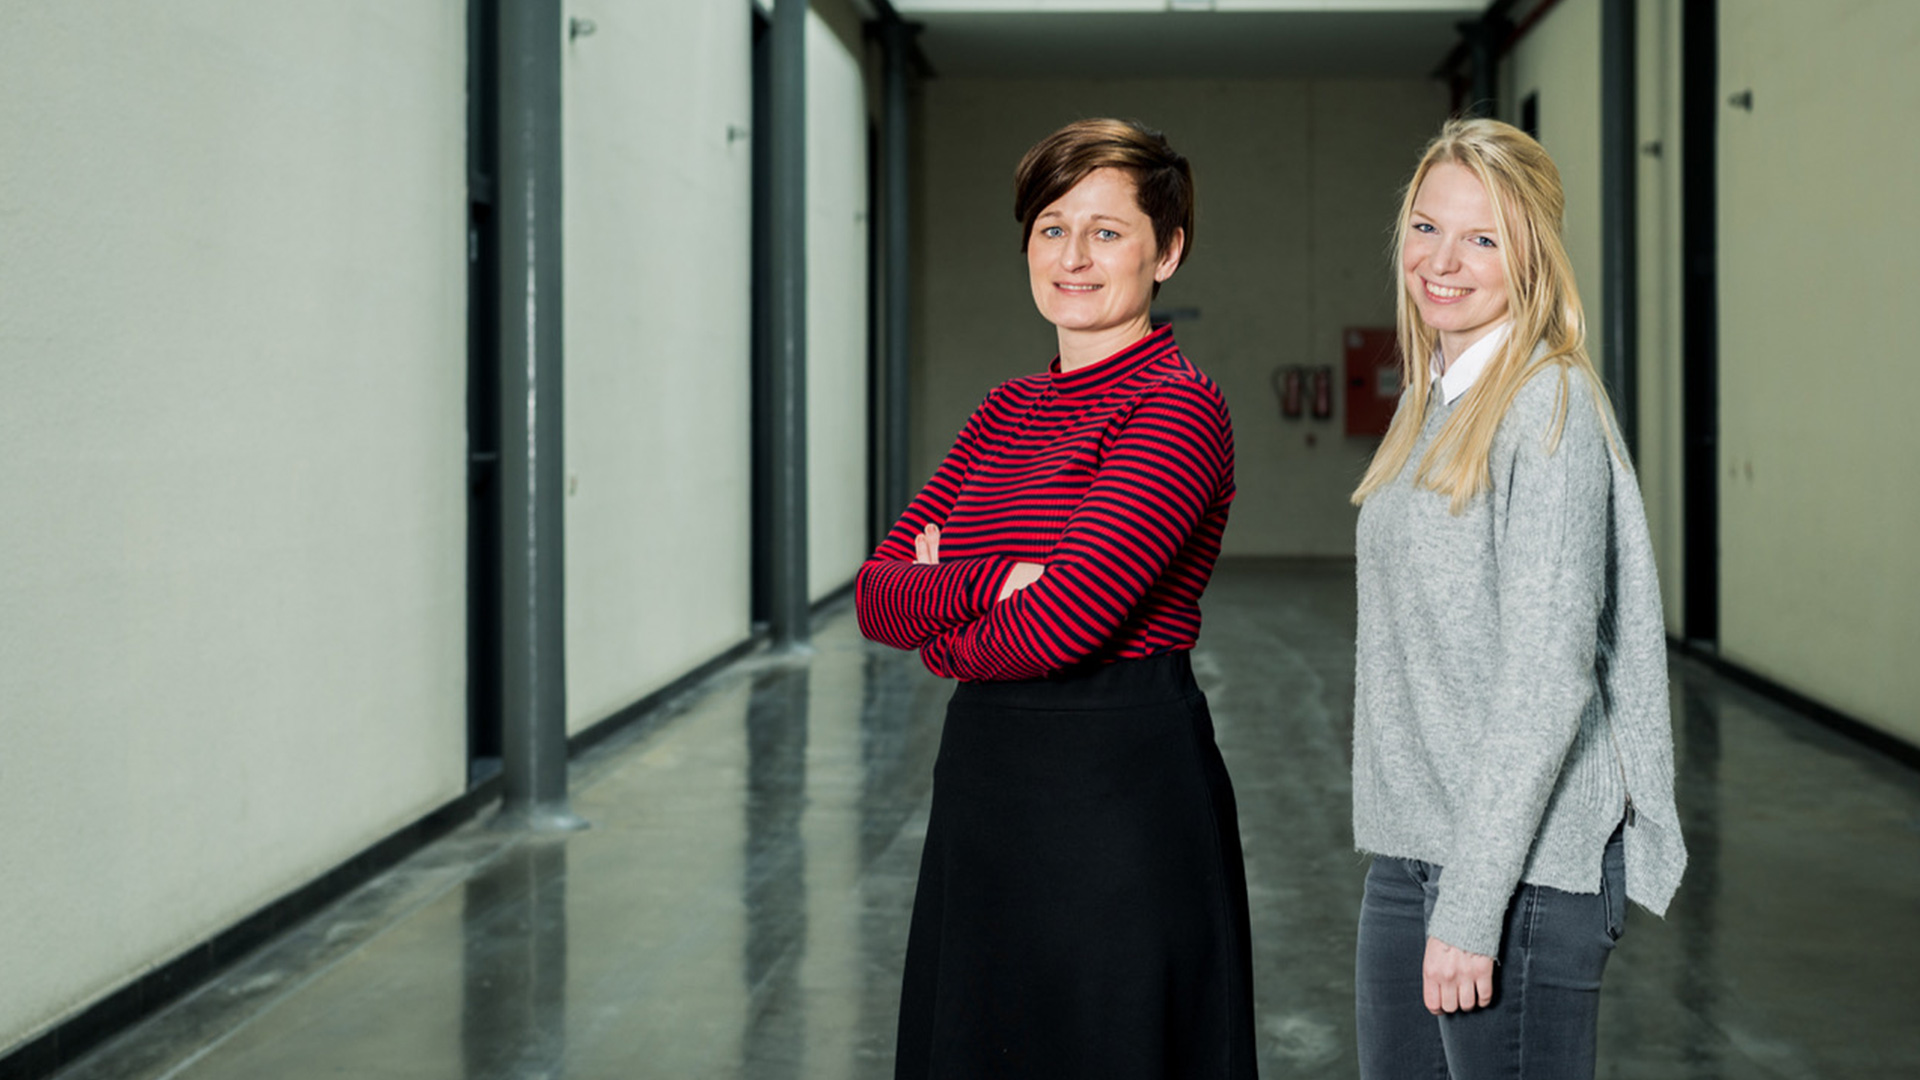 Pop-Up Communities by Research Director Lies Vandaele and Research Executive Sofie Vromant